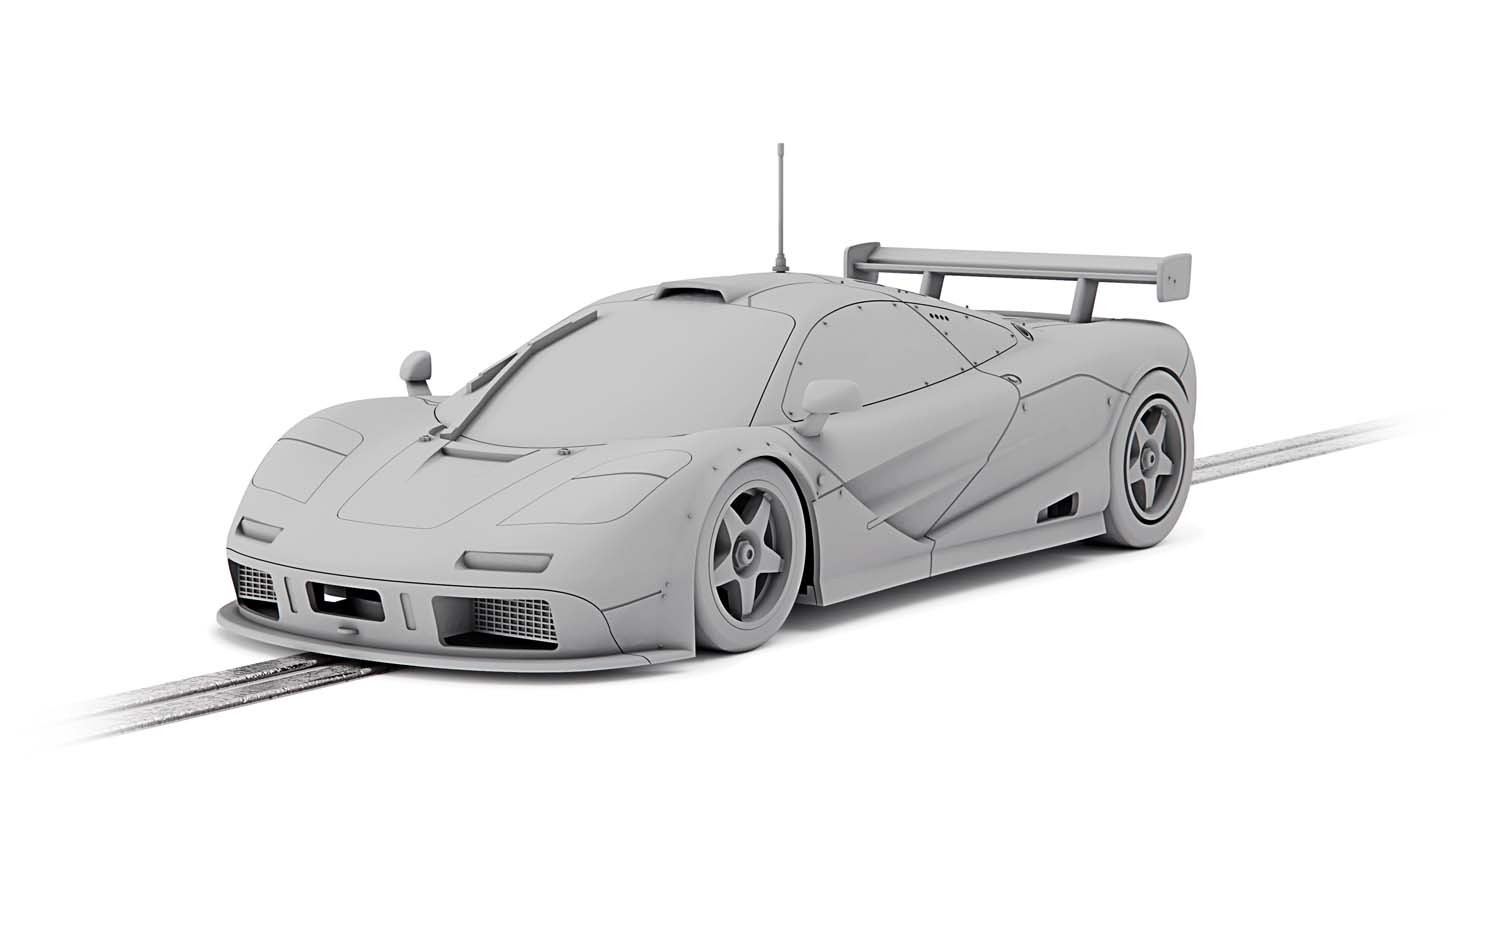 C4159 Scalextric McLaren F1 GTR, Le Mans 1995, BBA Competition